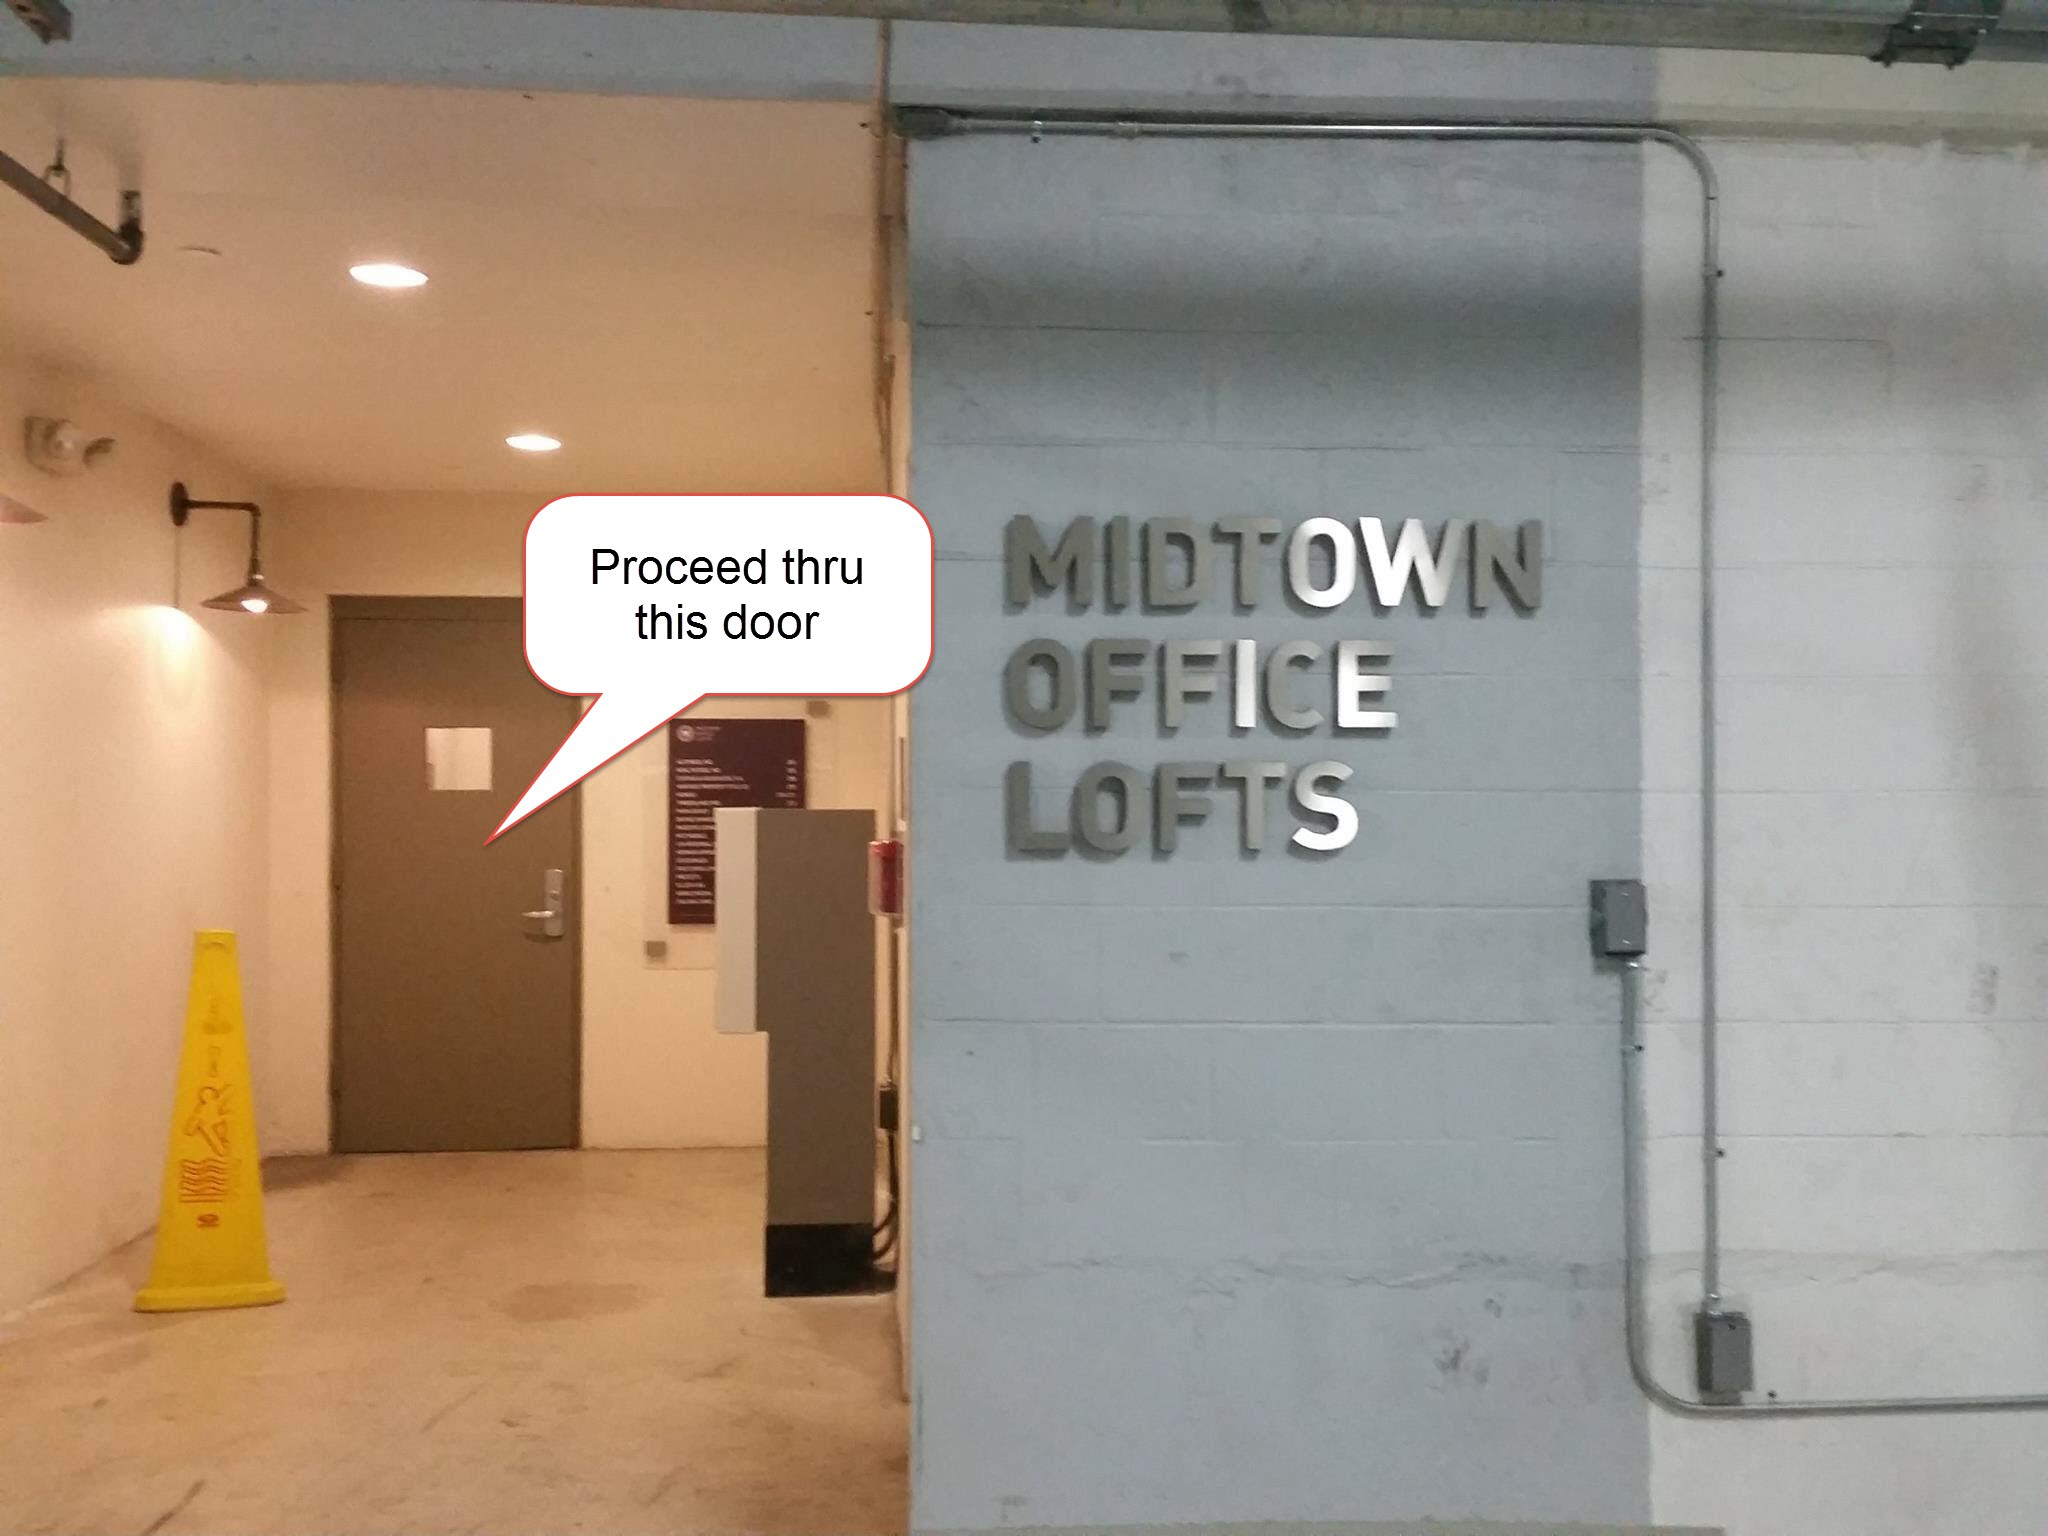 Midtown Entrance Lofts Call Out